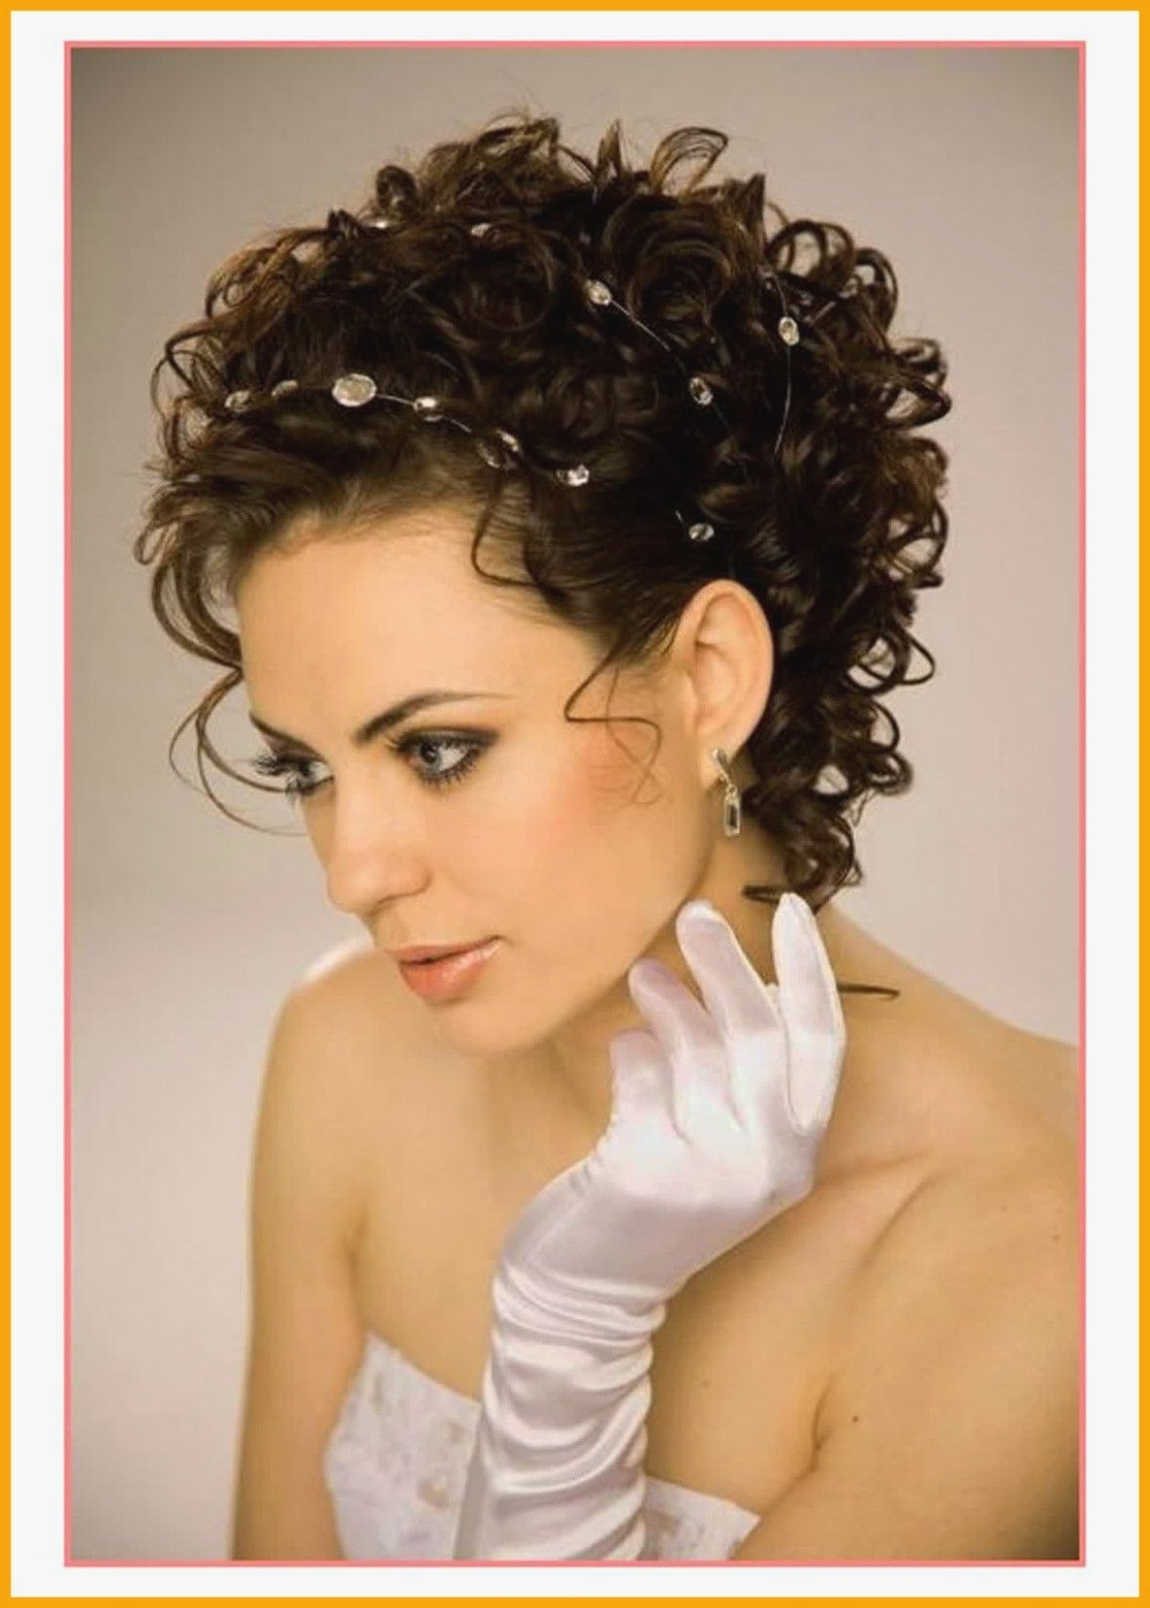 Astonishing Cute Wedding Hairstyles For Short Curly Hair Styles With Trendy Wedding Hairstyles For Short Curly Hair (View 4 of 15)